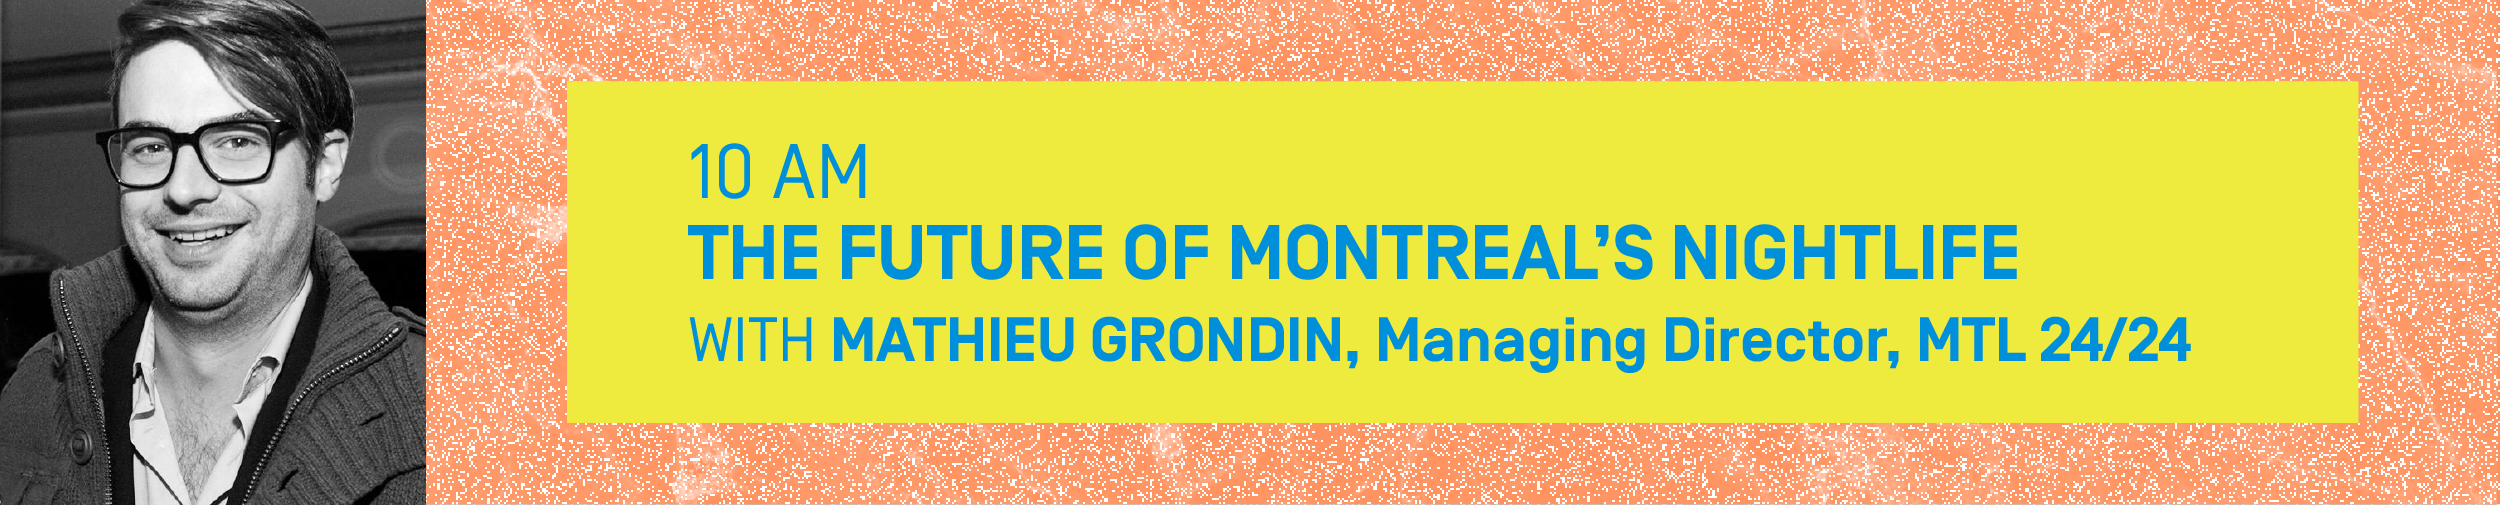 10 AM – THE FUTURE OF MONTREAL'S NIGHTLIFE With MATHIEU GRONDIN, Managing Director, MTL 24/24